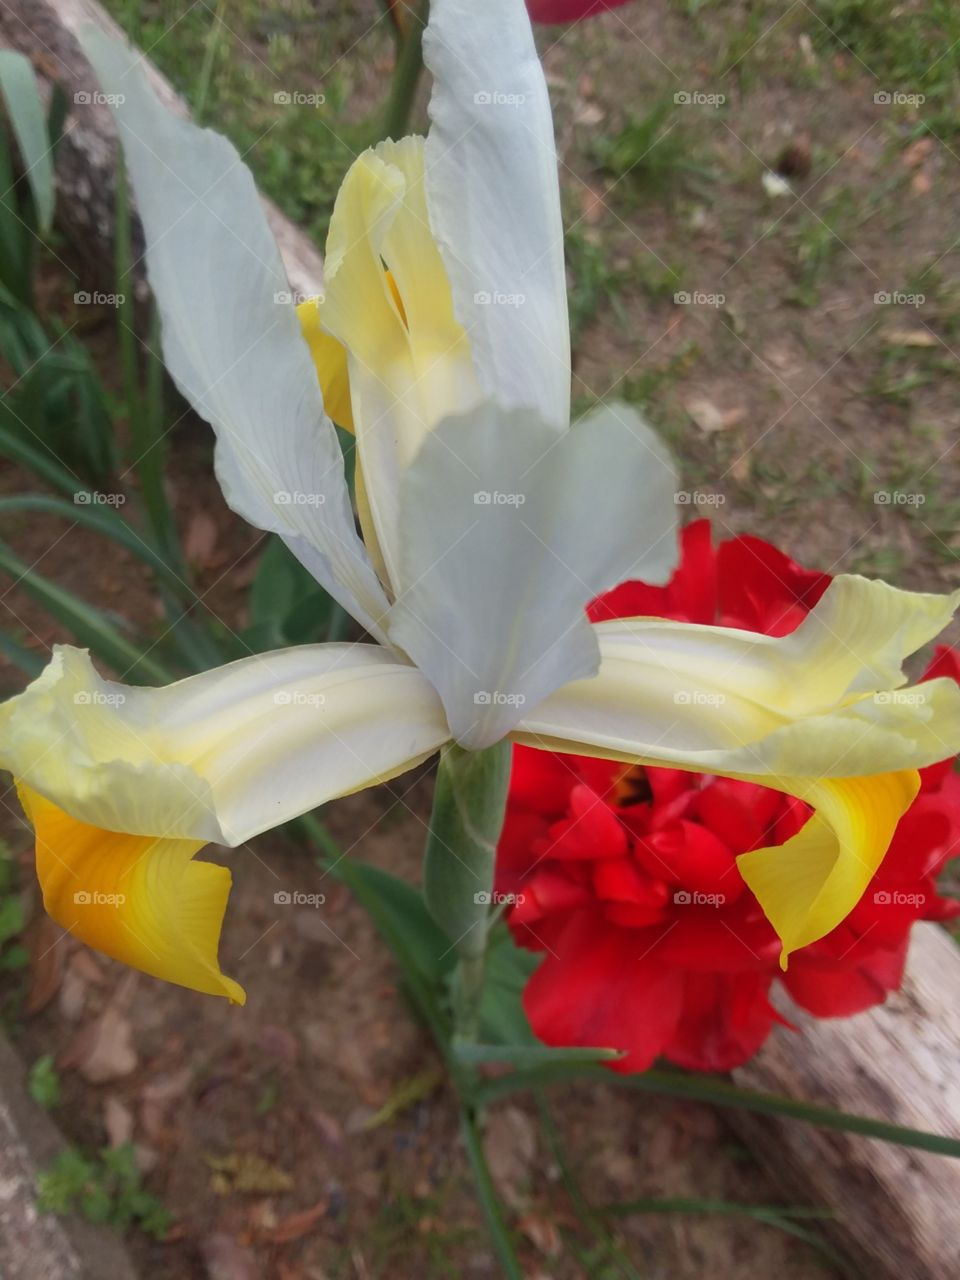 Up close look at a Such Iris 'Apollo' and a Peony flowered Tulip in the background.